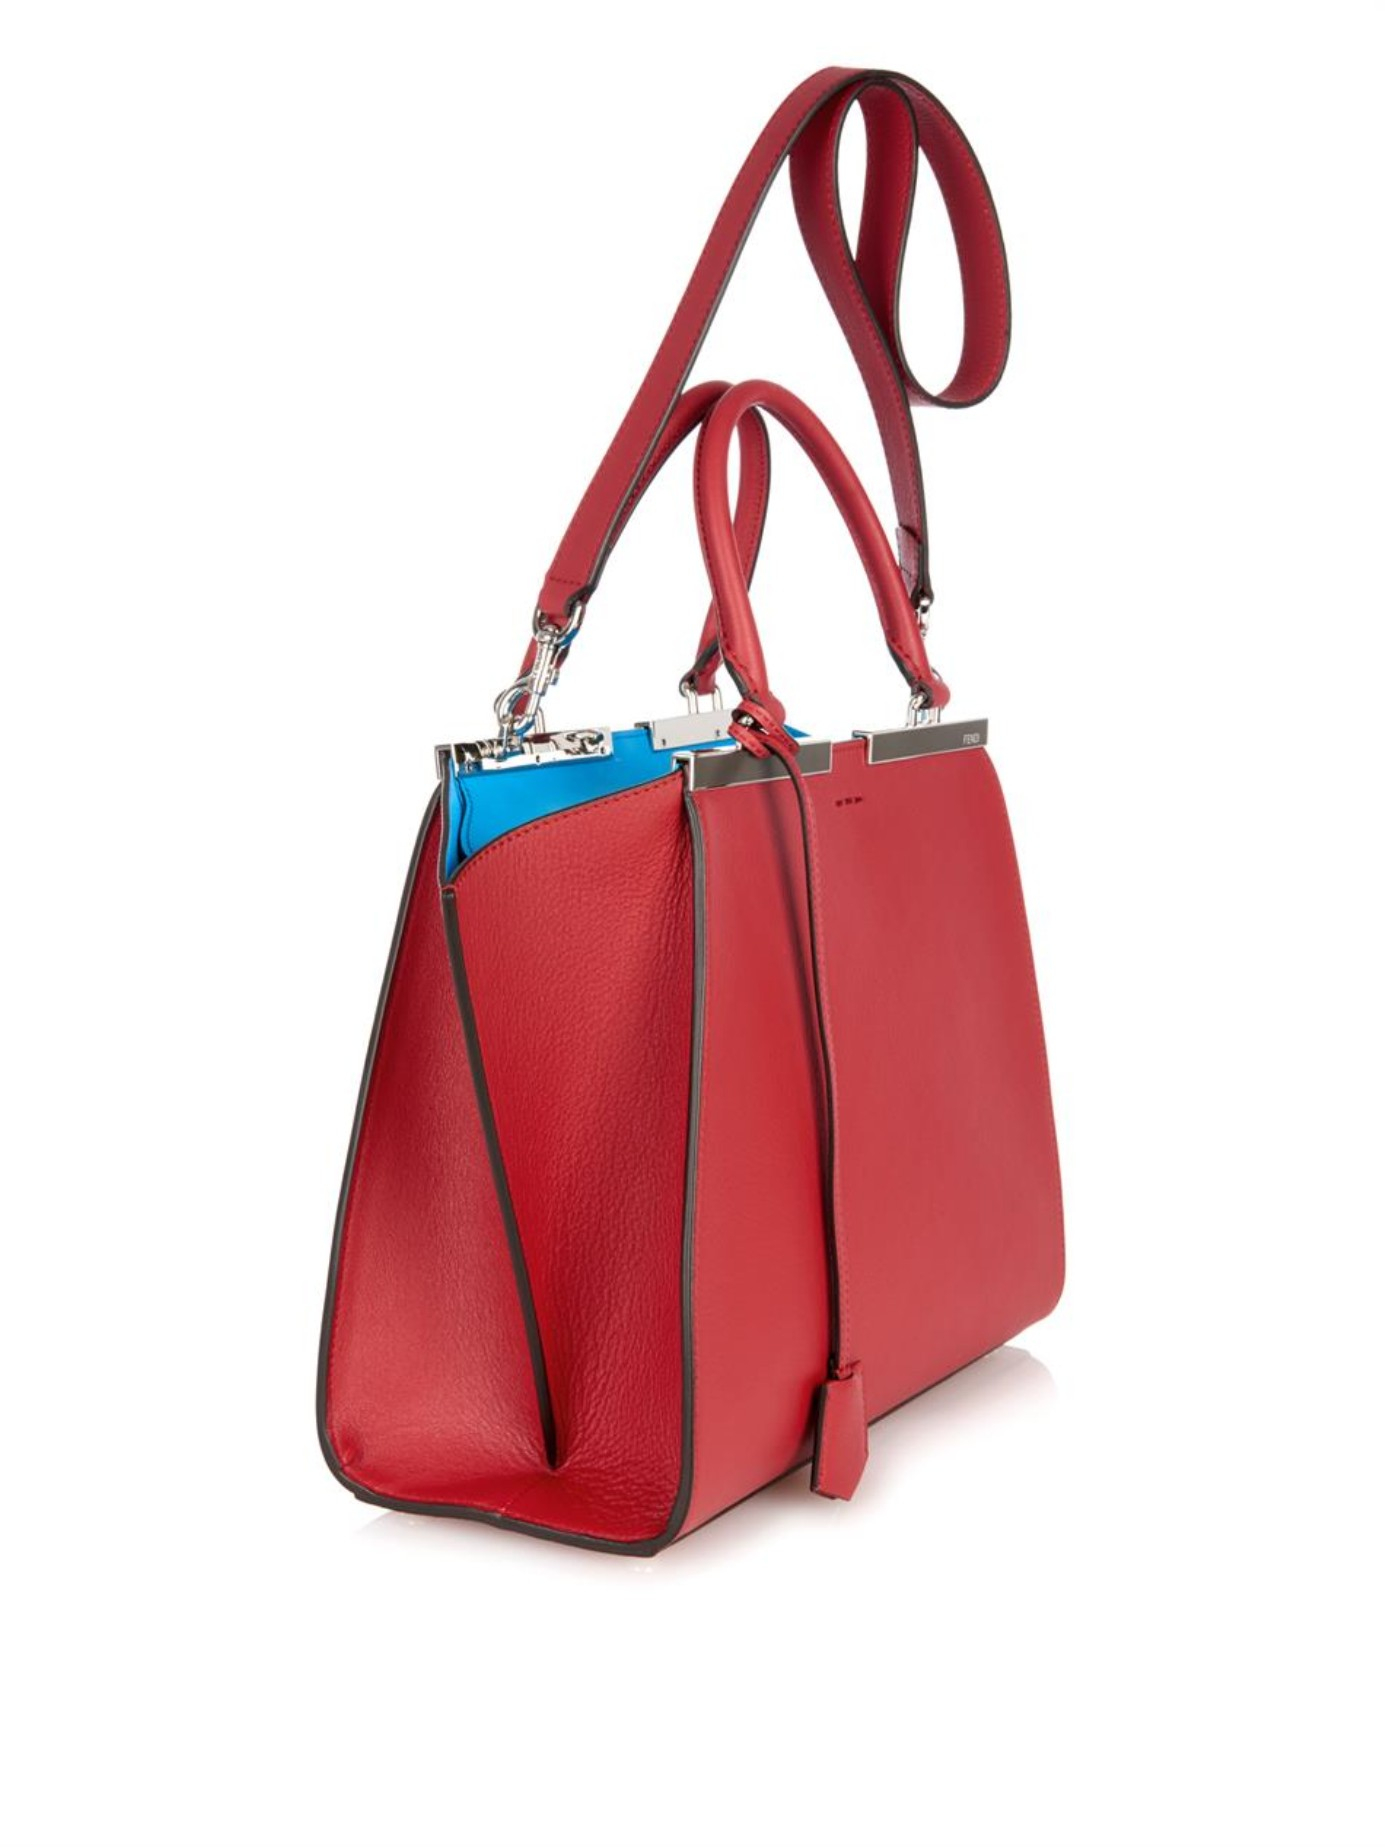 Fendi 3jours Small Leather Trapeze Tote in Red (RED MULTI)  9eecf08702d60